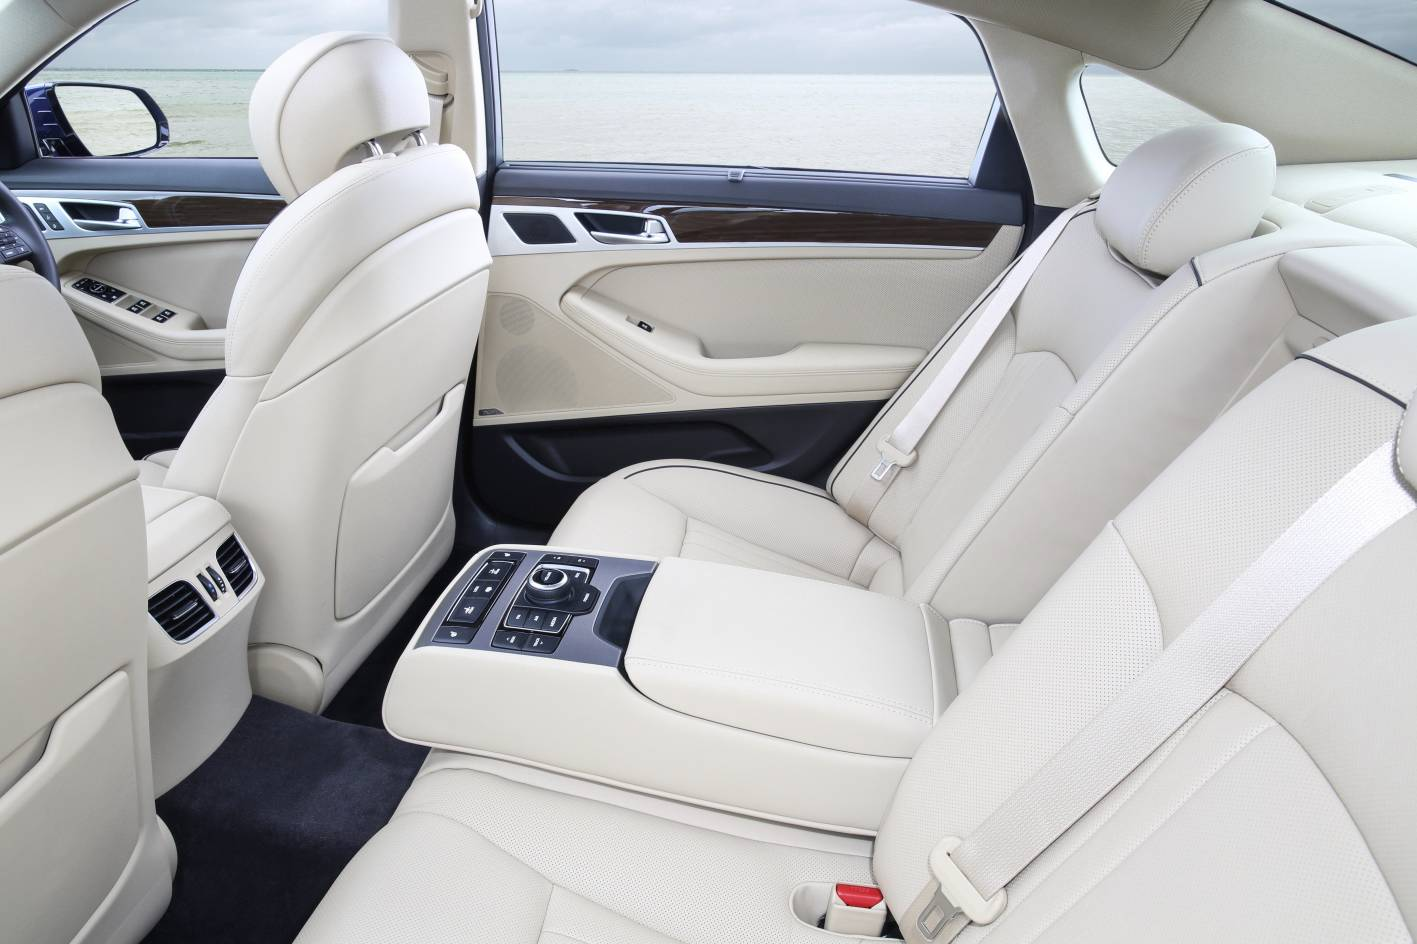 Hyundai Cars News Flagship Rear Drive Genesis On Sale Now From 60k